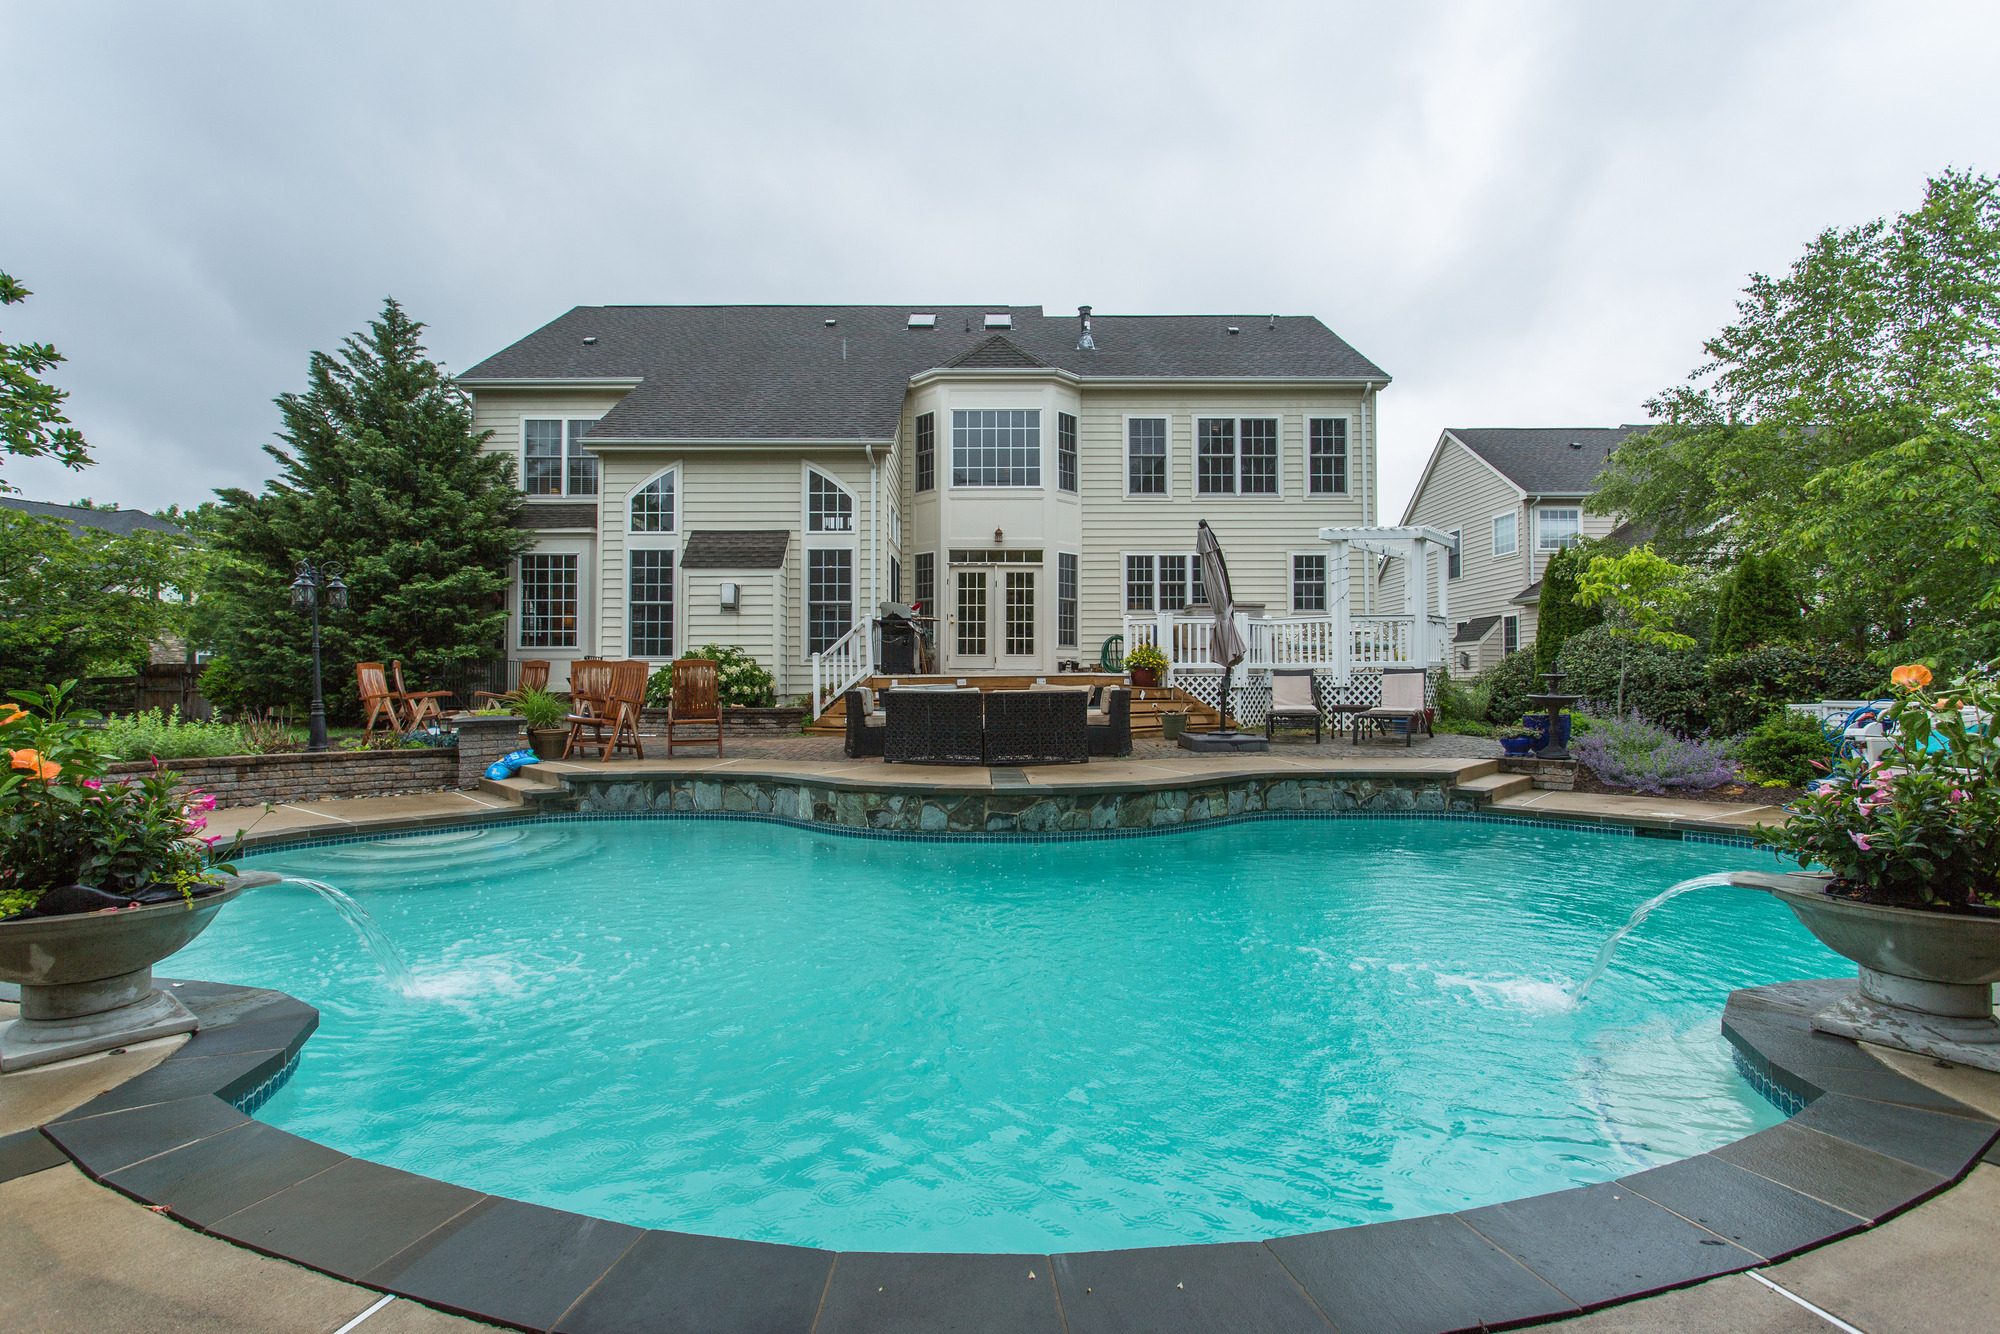 Home For Sale in Washington DC Suburbs | 9070 Roaring Spring Loop